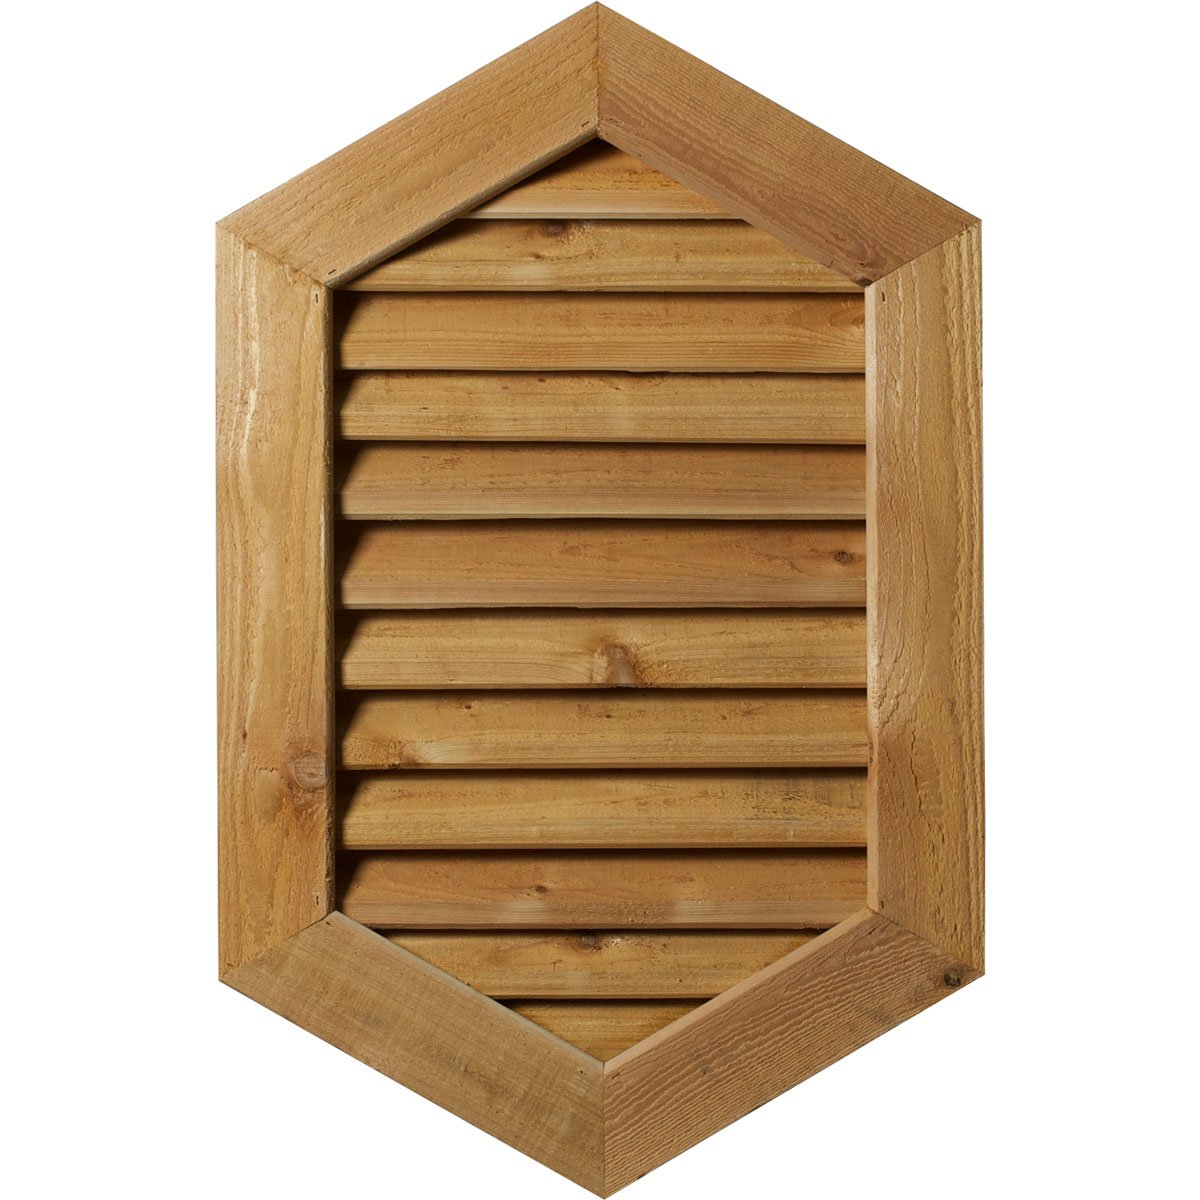 Ekena Millwork GVWVP20X1601SFUWR-09 Unfinished, Functional, Smooth Western Red Cedar 20'' Width X 16'' Height Vertical Peaked Gable Vent with 1'' x 4'' Flat Trim Frame